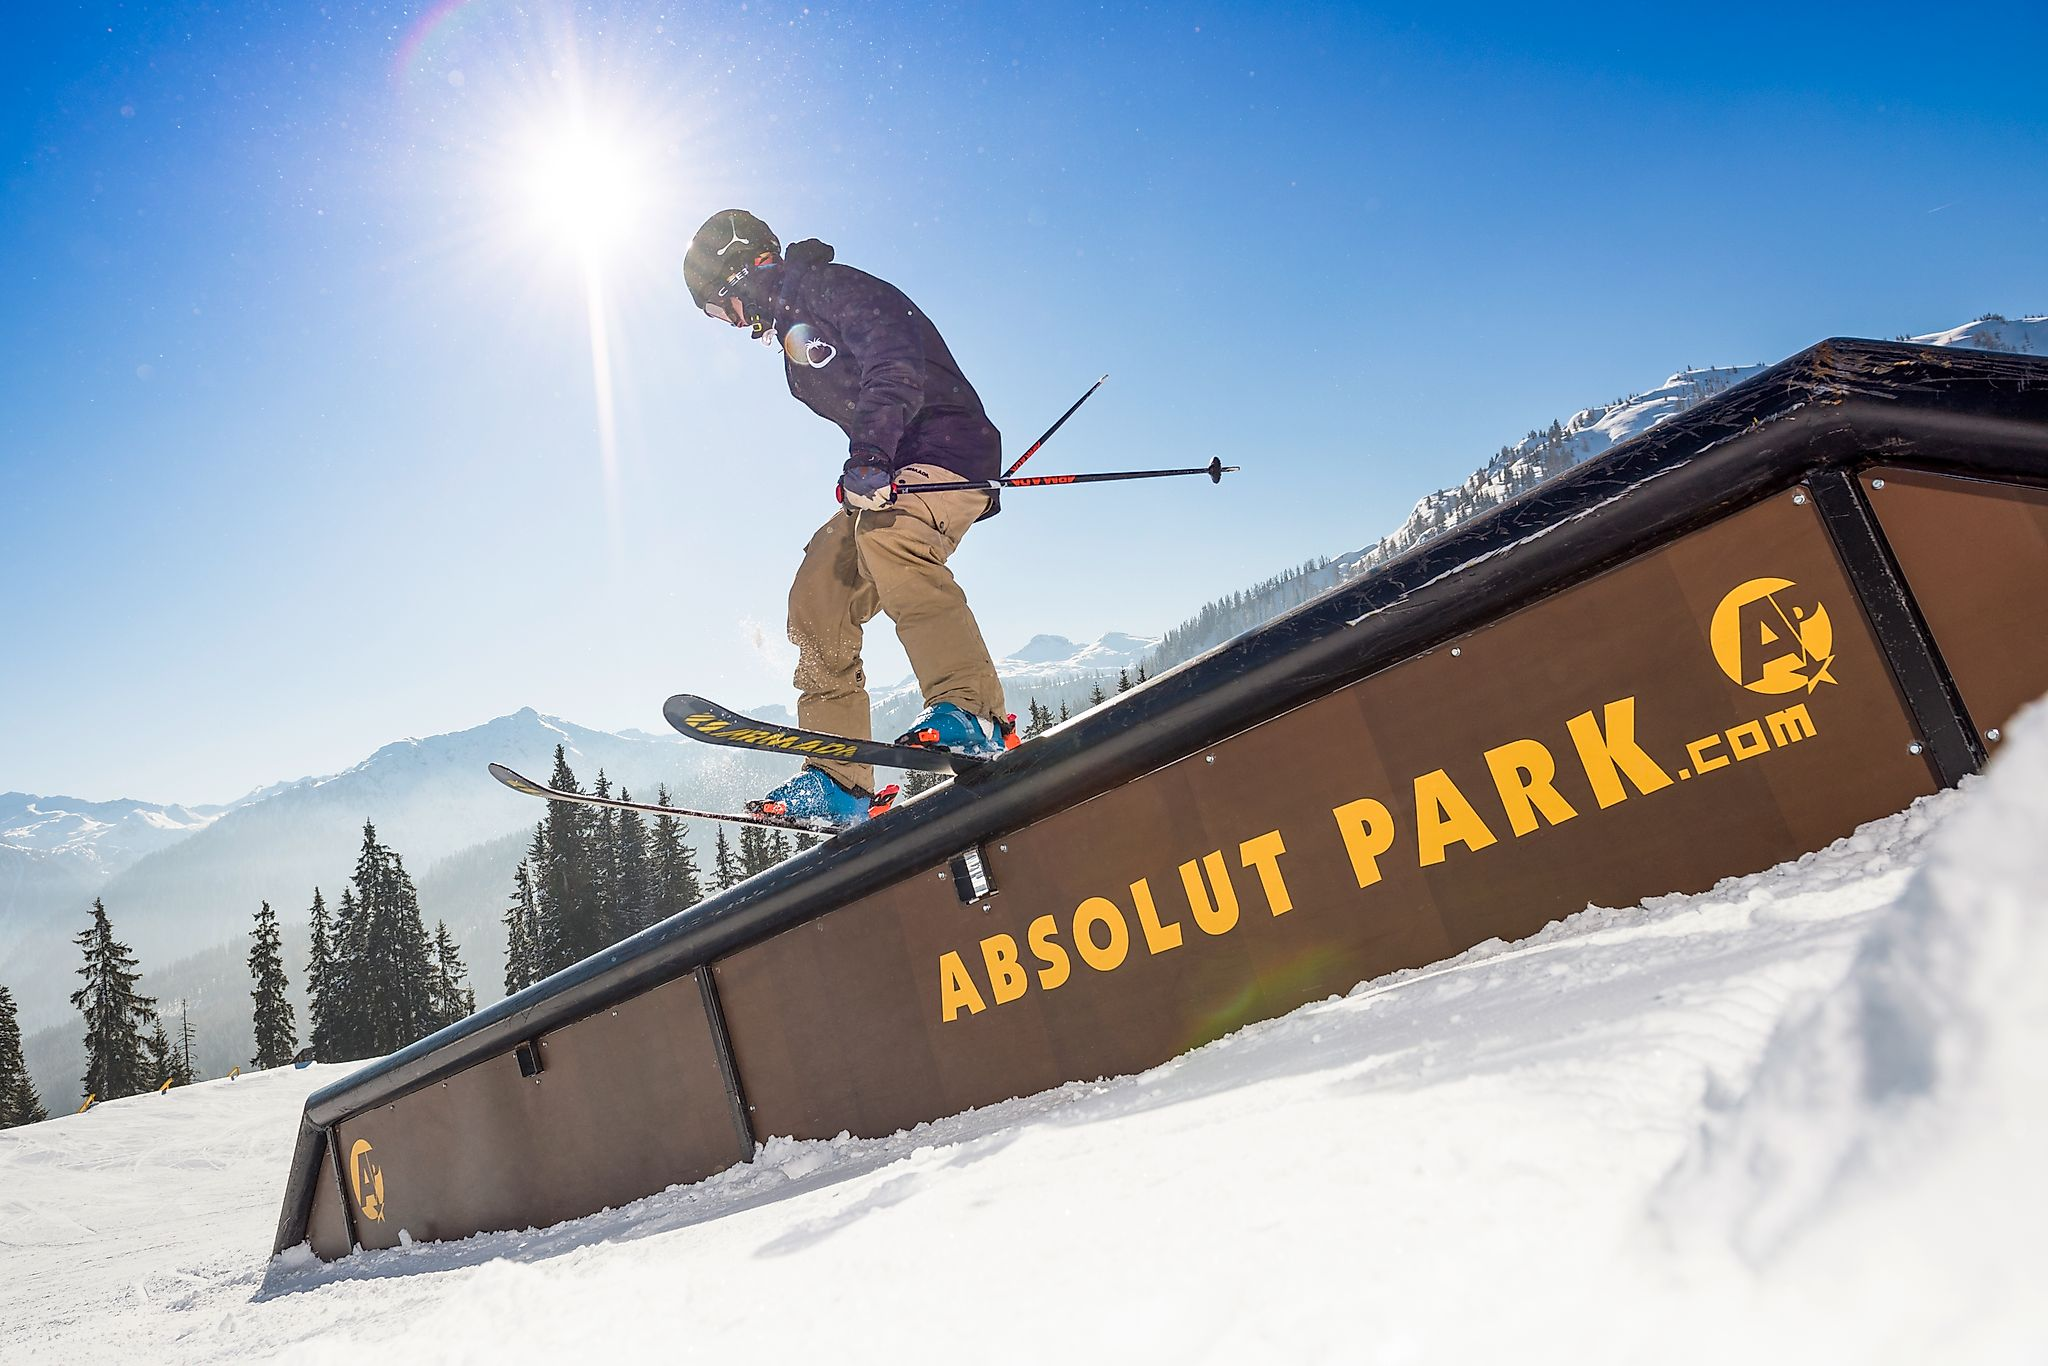 <p>The Absolutpark at Shuttleberg Flachauwinkl offers lots of obstacles for snowboarders and freeskiers.</p>